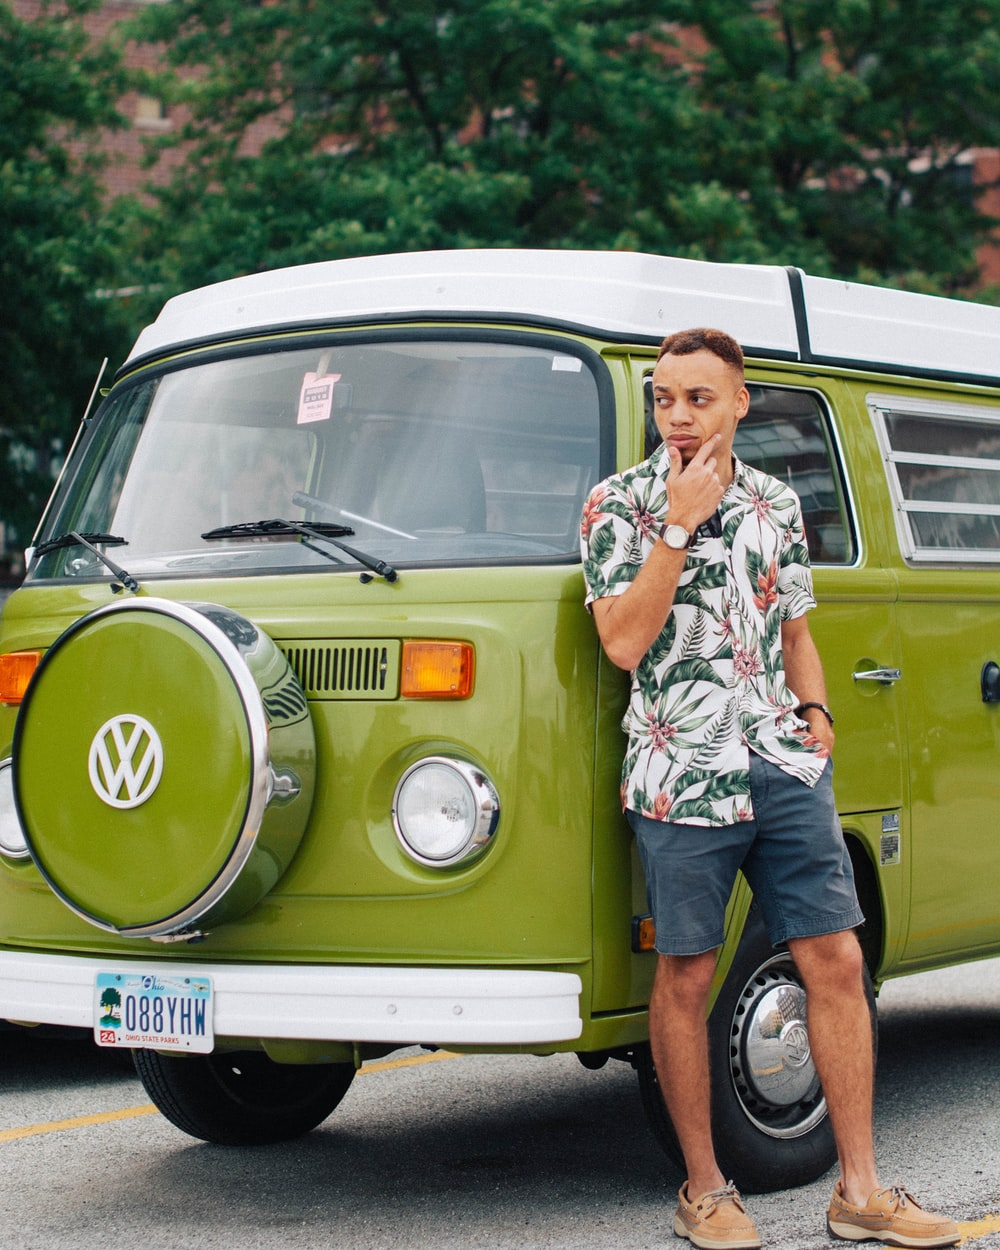 man leaning on green Volkswagen vehicle